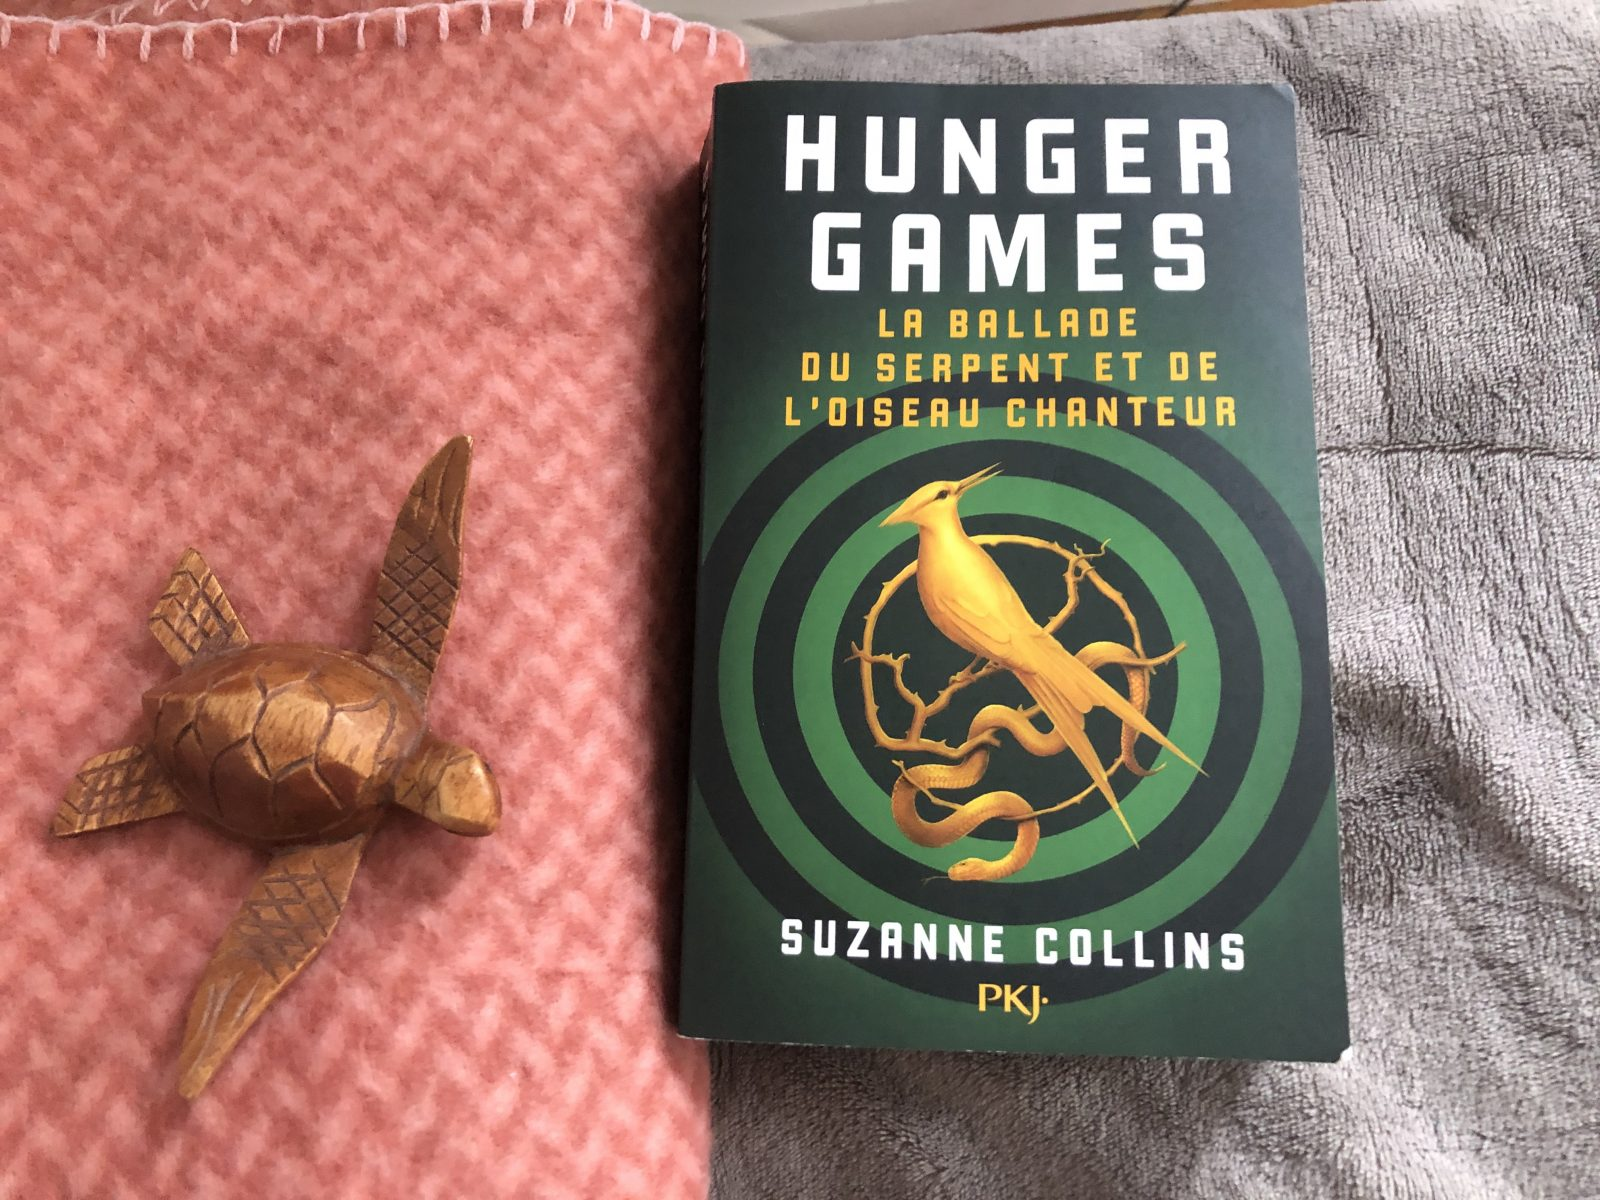 Couverture du livre Hunger Games de Suzanne Collins